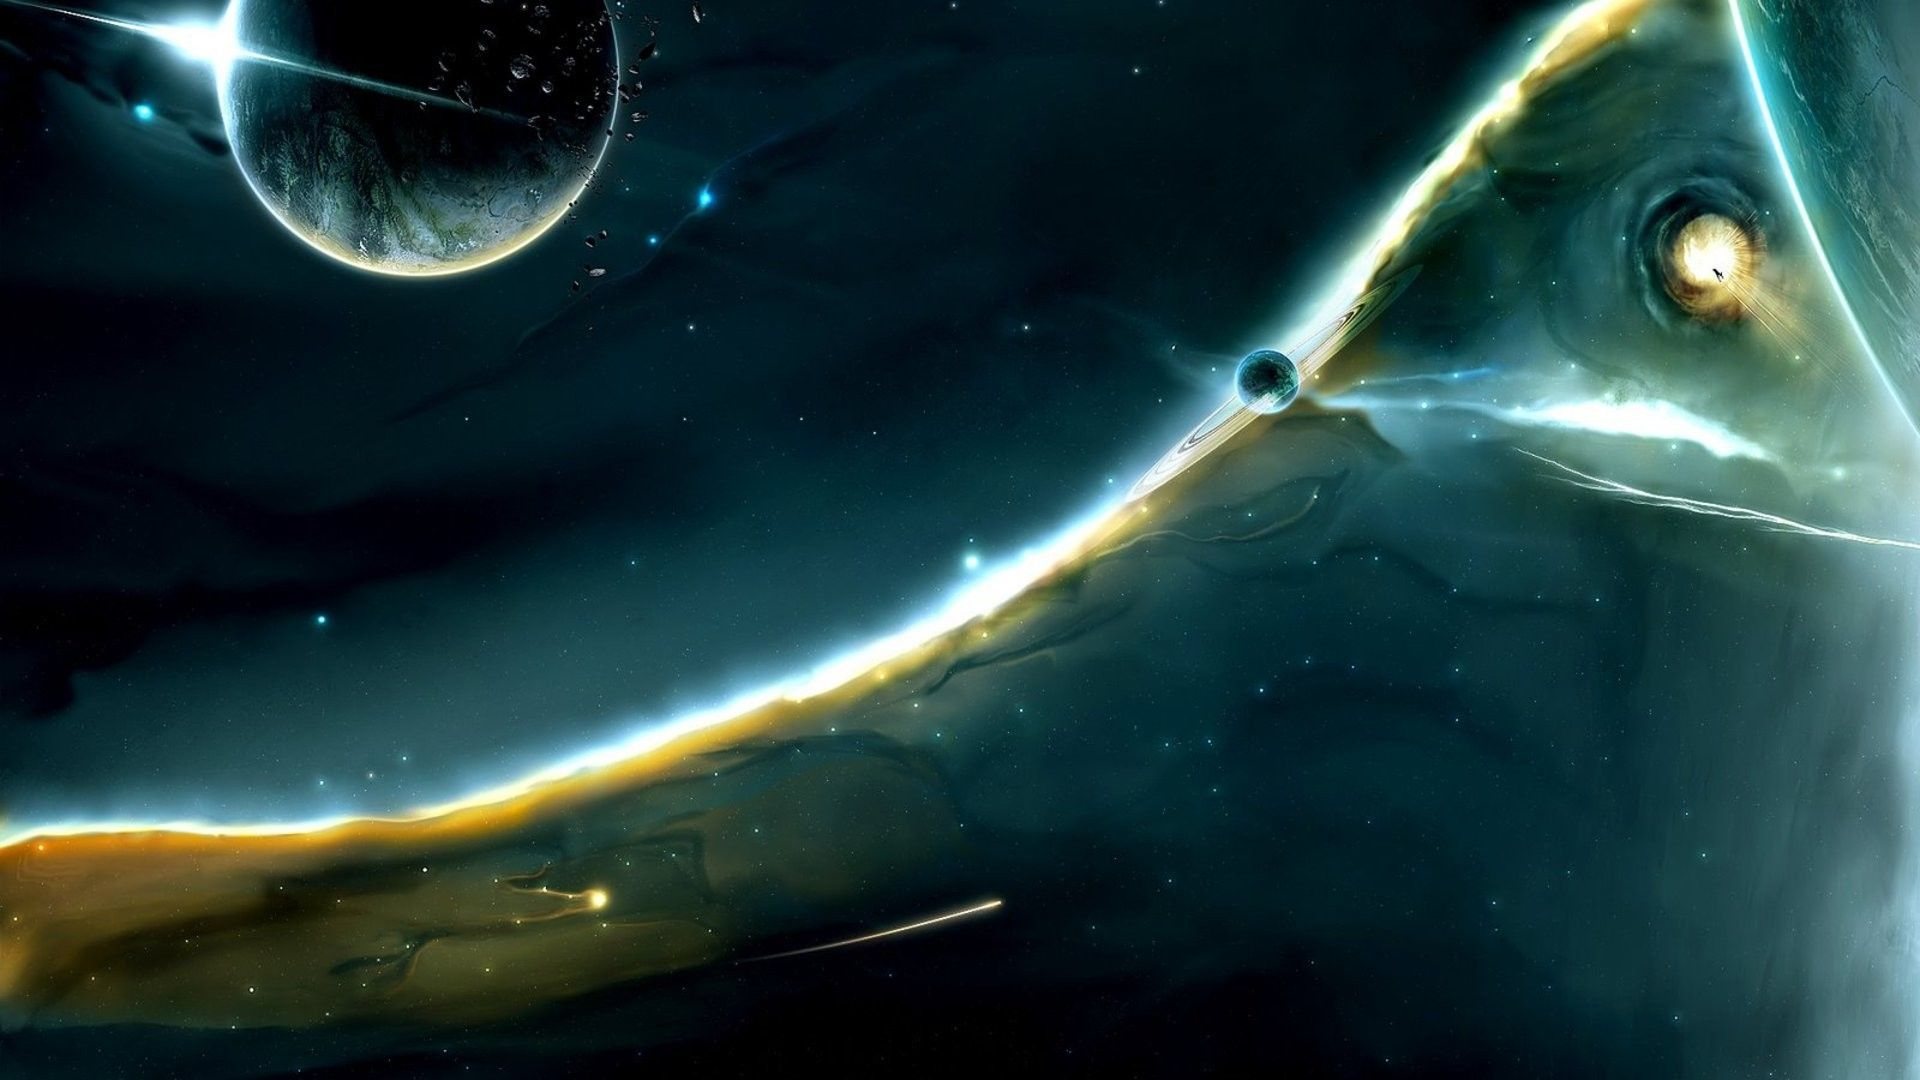 Outer Space Wallpaper 1920x1080 Outer Space Planets Fantasy Art